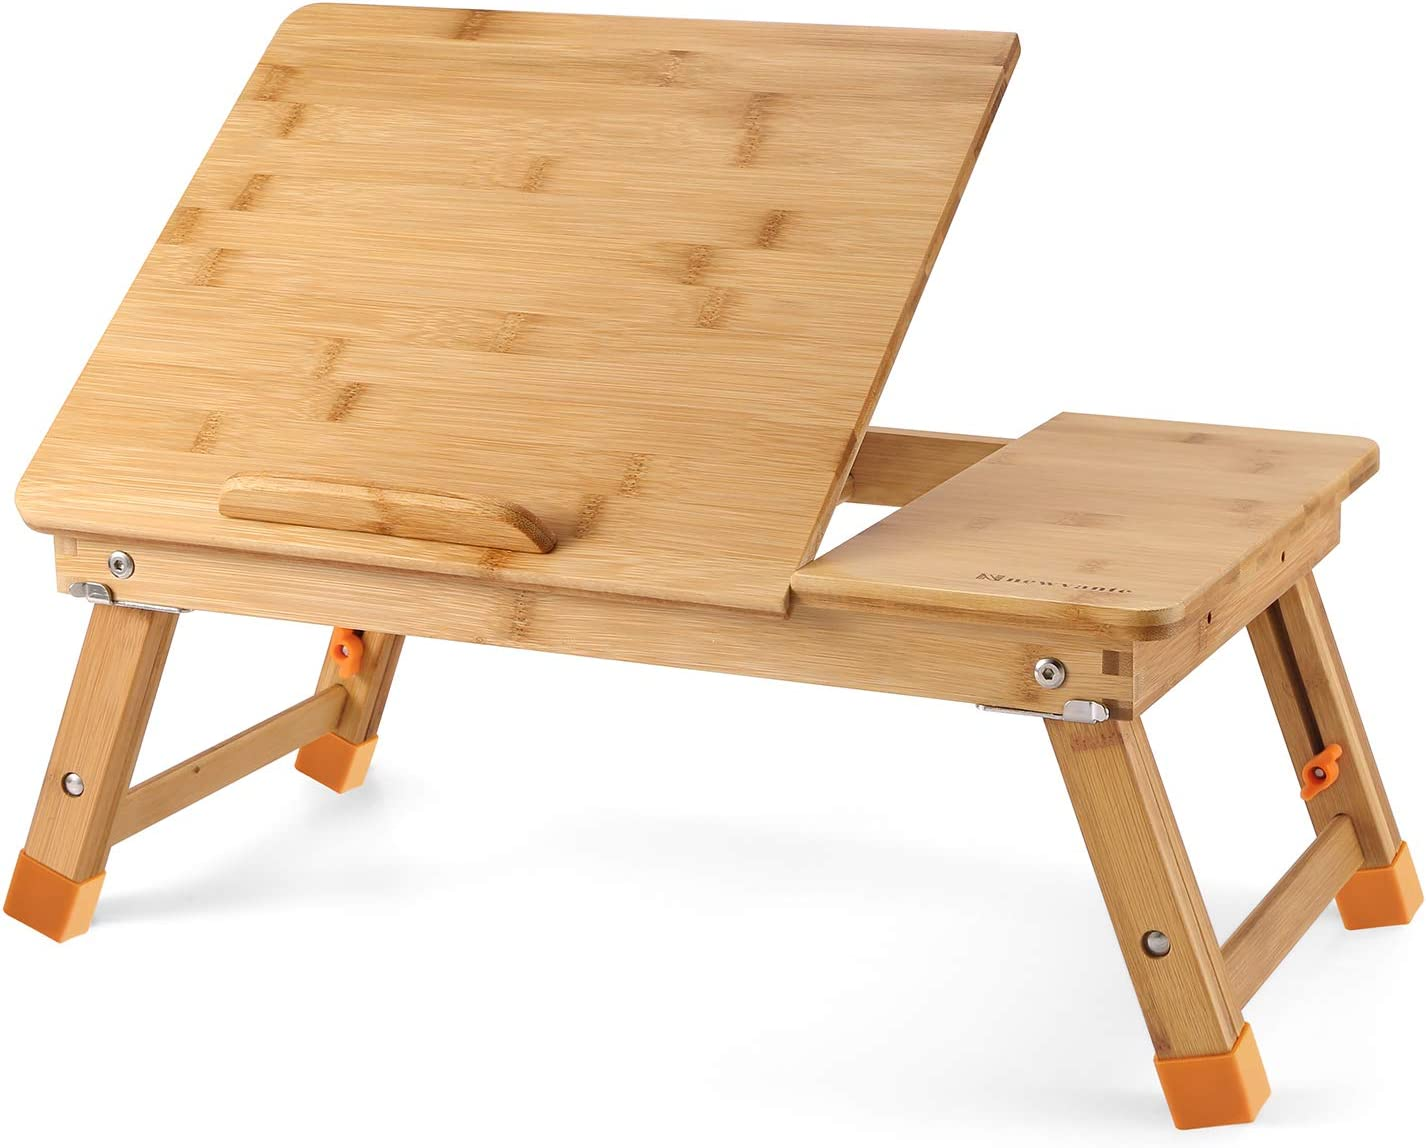 Nnewvante Lap Desk Bed Tray Table Kid-Size Adjustable 100% Bamboo Portable Breakfast Serving Lap Table w' Tilting for Reading Writing Playing